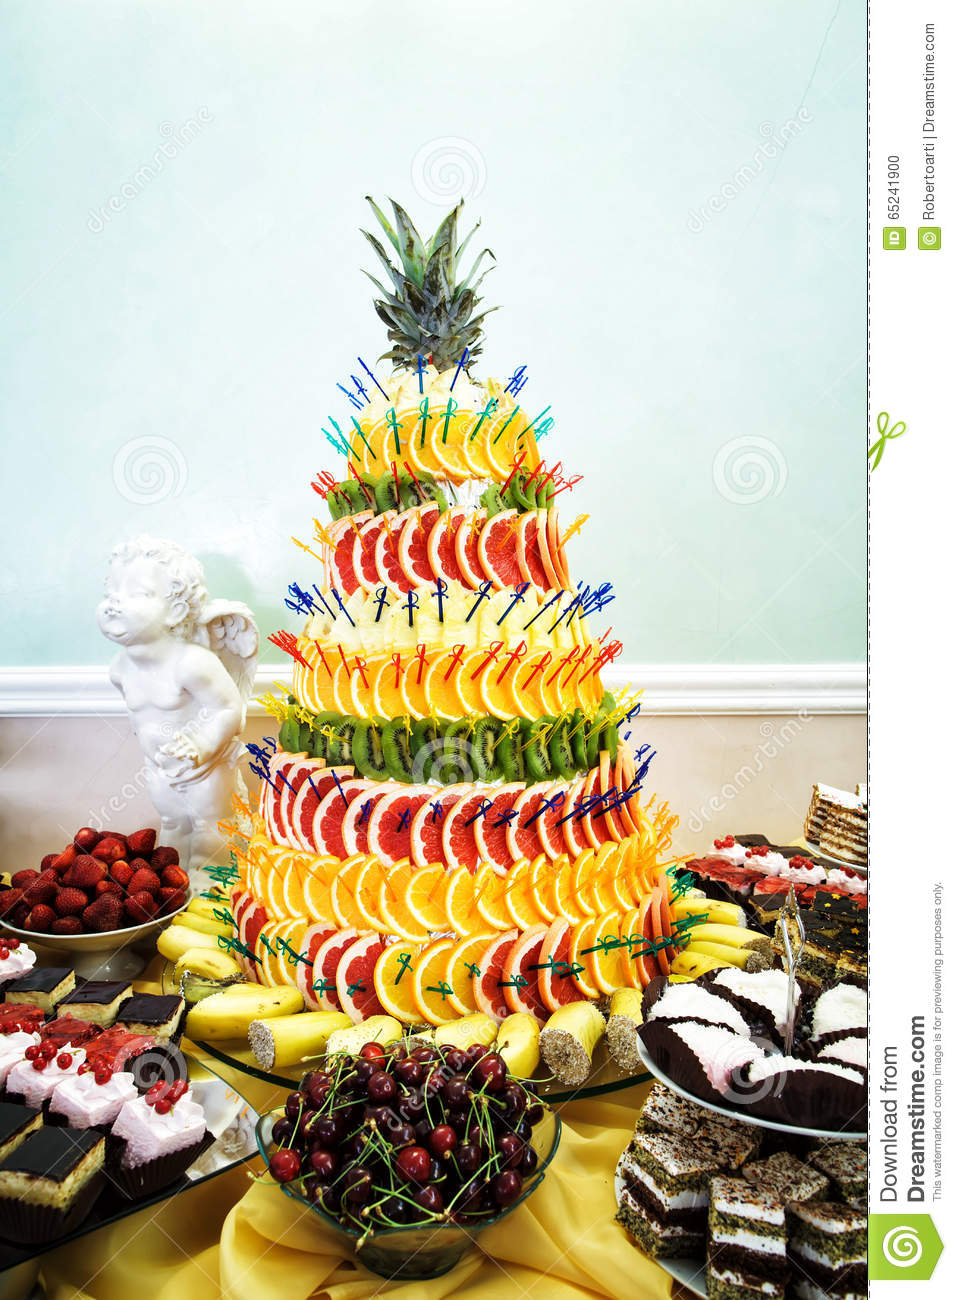 fruit pyramid decoration cakes and cookies at dessert table at stock photo image of gourmet. Black Bedroom Furniture Sets. Home Design Ideas